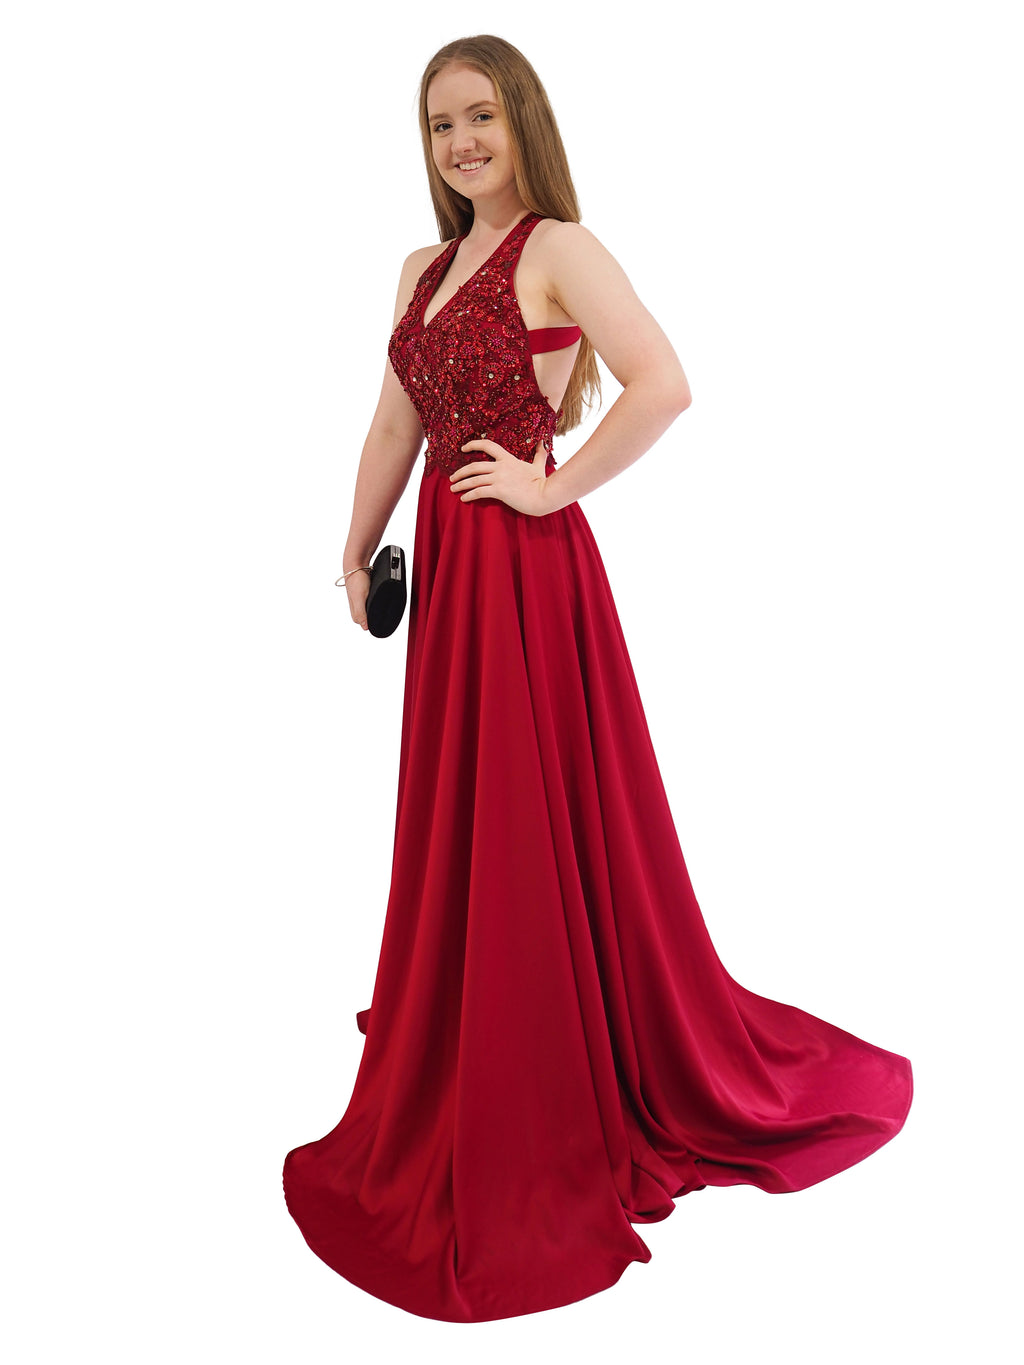 Lucy dark red satin a-line dress with beaded top